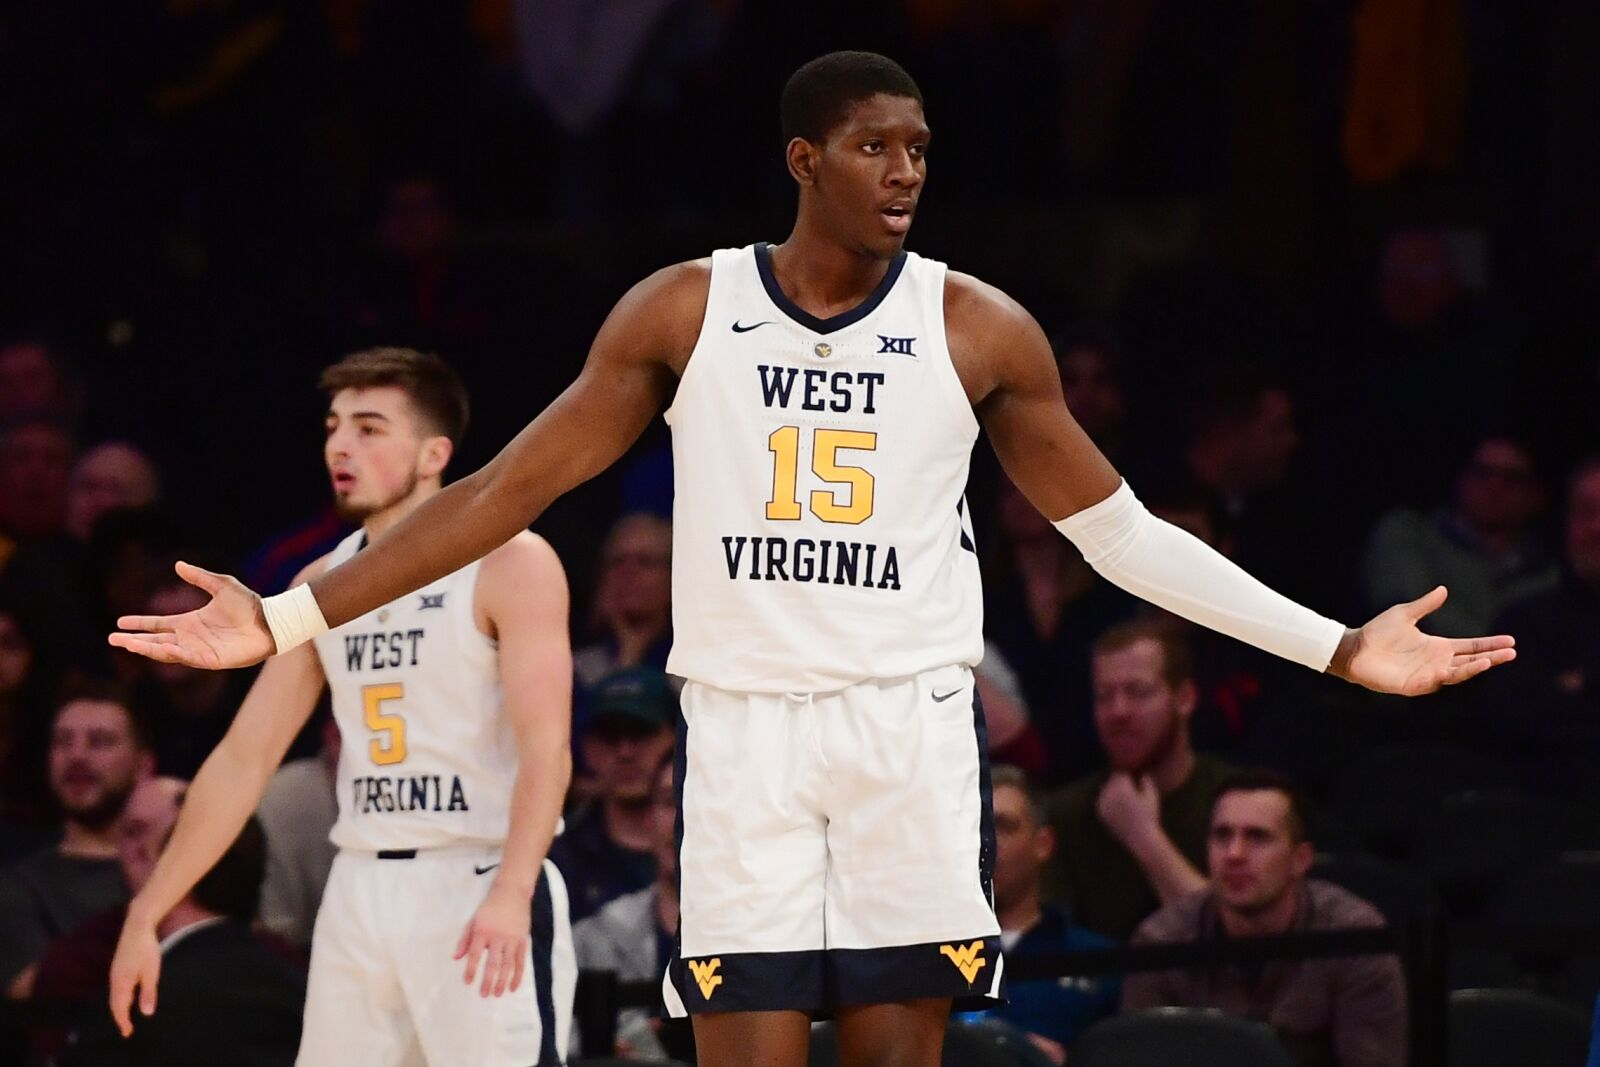 Baylor at West Virginia Preview- Time, TV Network, Location Information